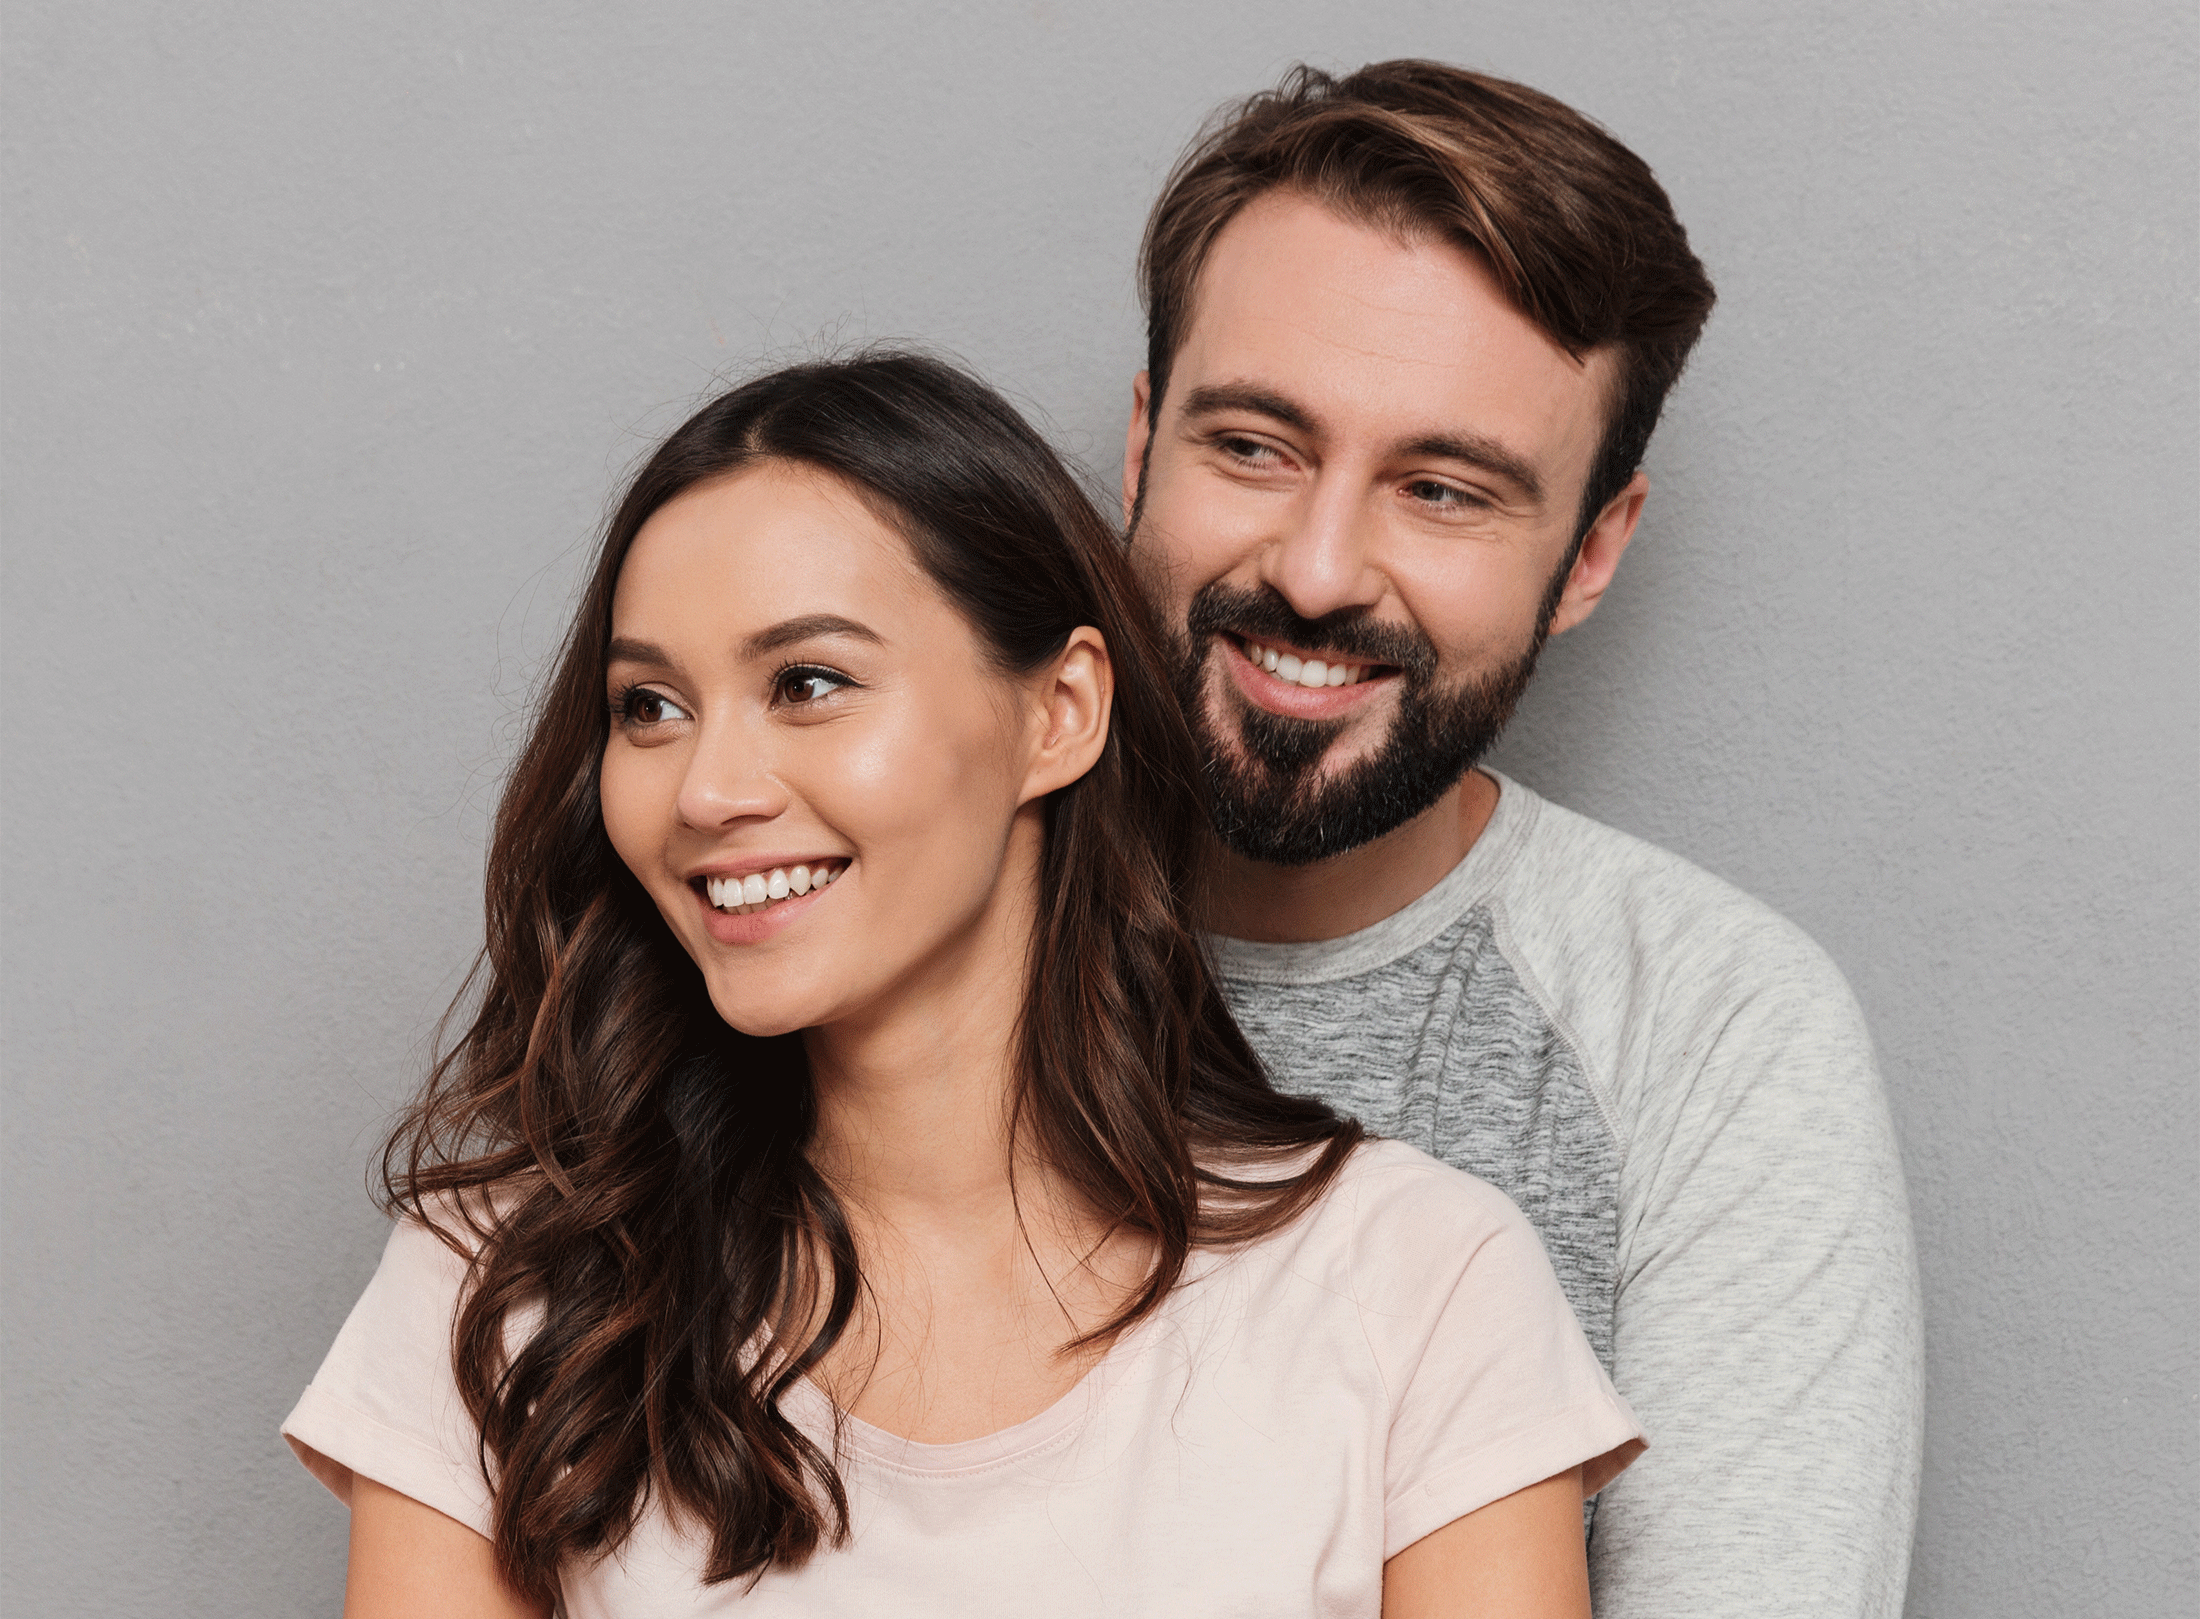 Young expecting couple